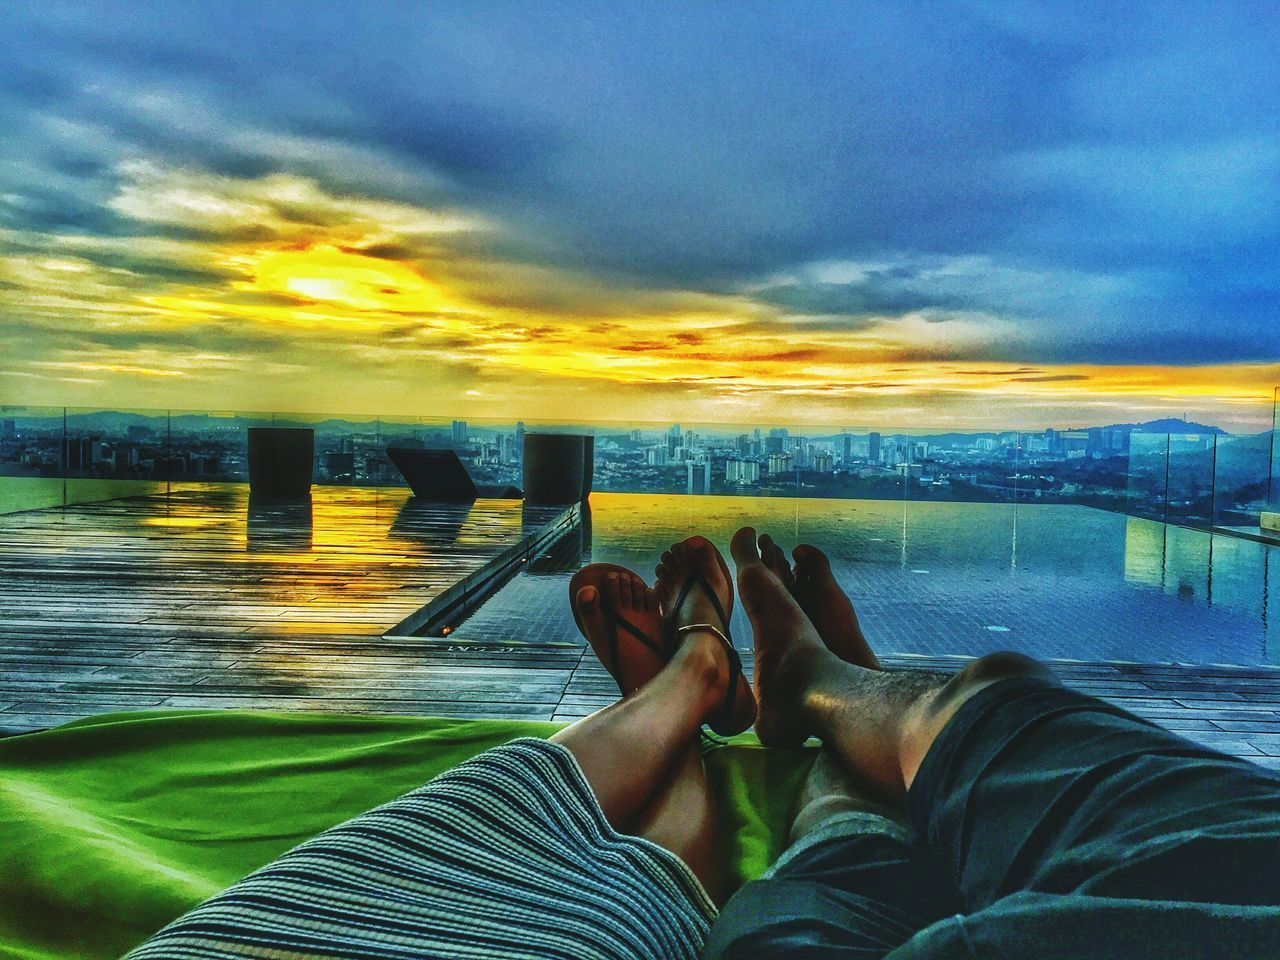 Human Leg Low Section Human Body Part Personal Perspective Human Foot Limb Cloud - Sky Sunset Water Beach One Person Barefoot Lifestyles Sea Sky Relaxation Leg People Adults Only Adult Chillaxing EyeEm Diversity The Architect - 2017 EyeEm Awards